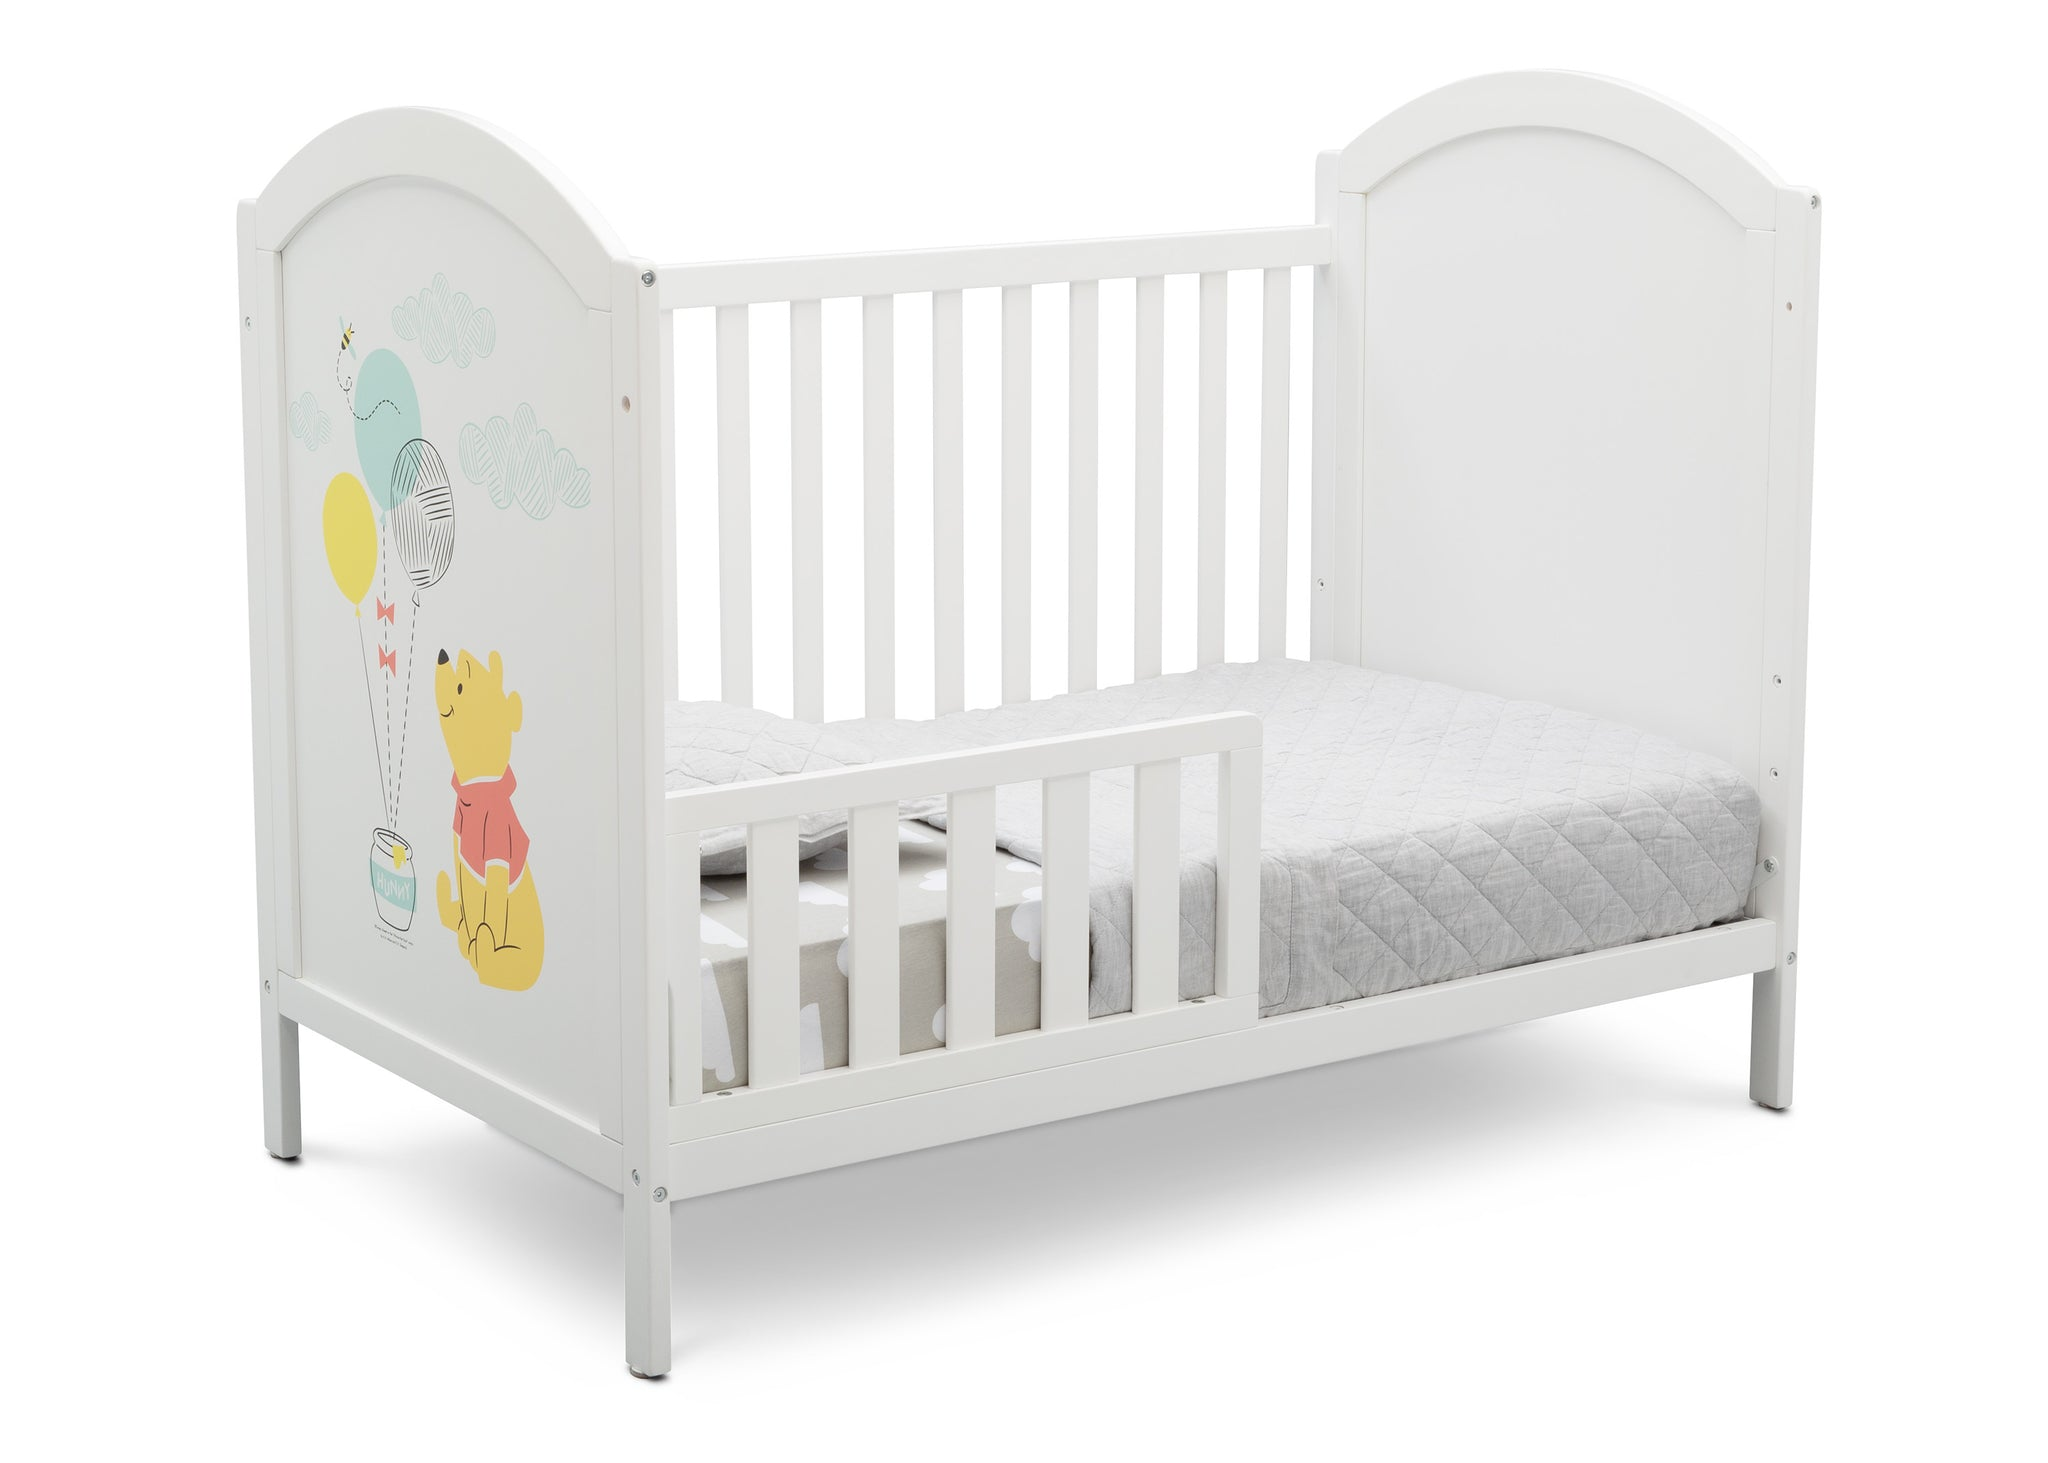 Delta Children Bianca White with Pooh (1301) Winnie The Pooh 4-in-1 Convertible Crib, Toddler Bed Silo View